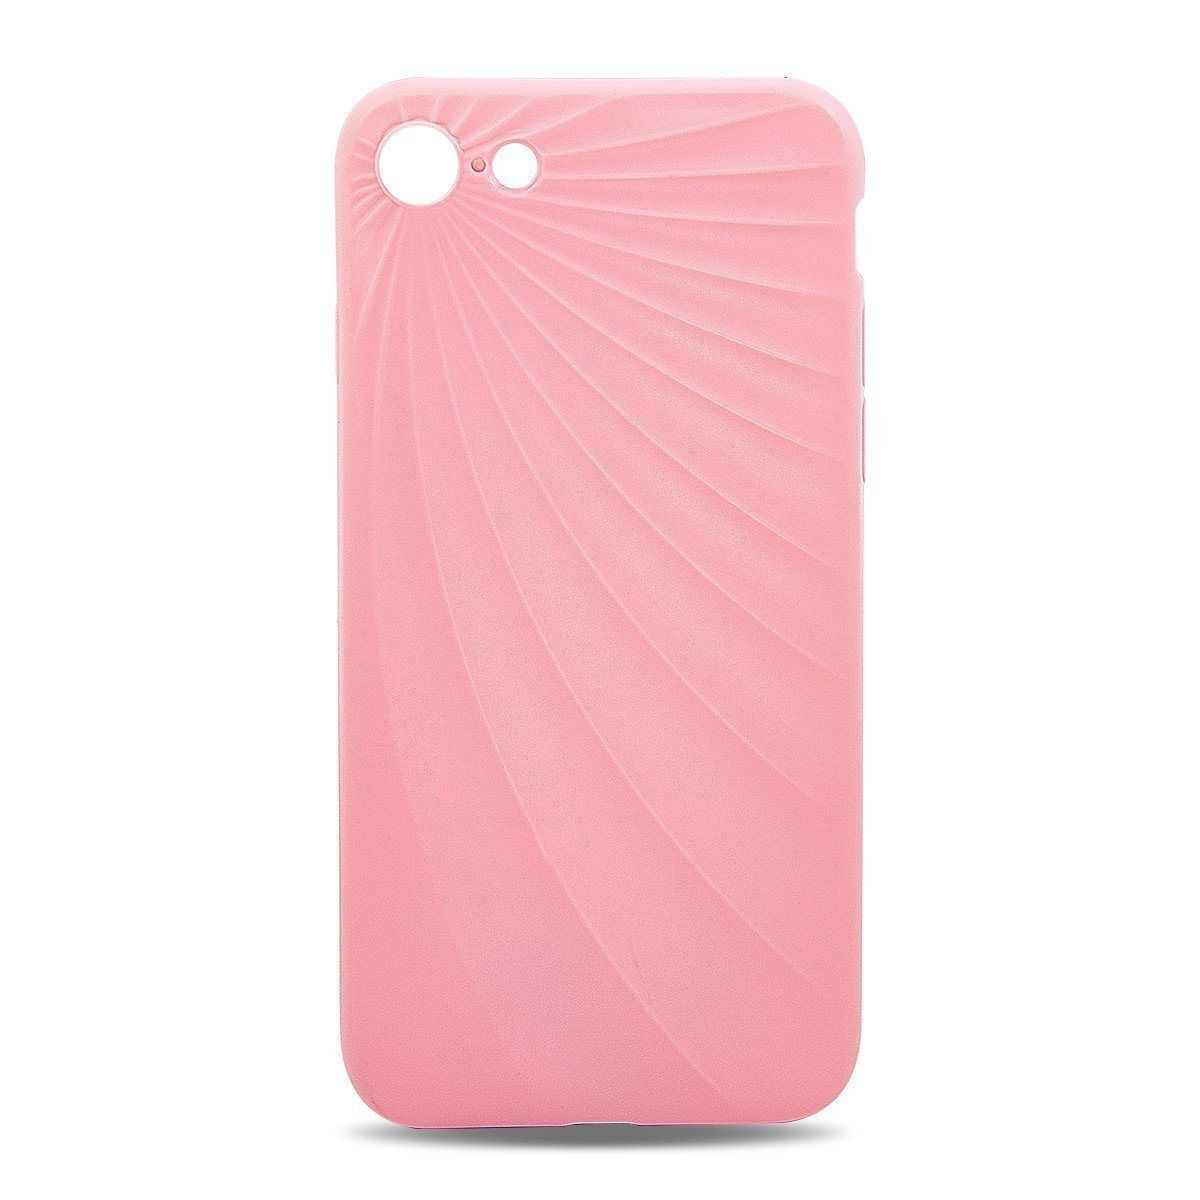 Zore Case for iPhone 7 Plus /8 Plus - Pink